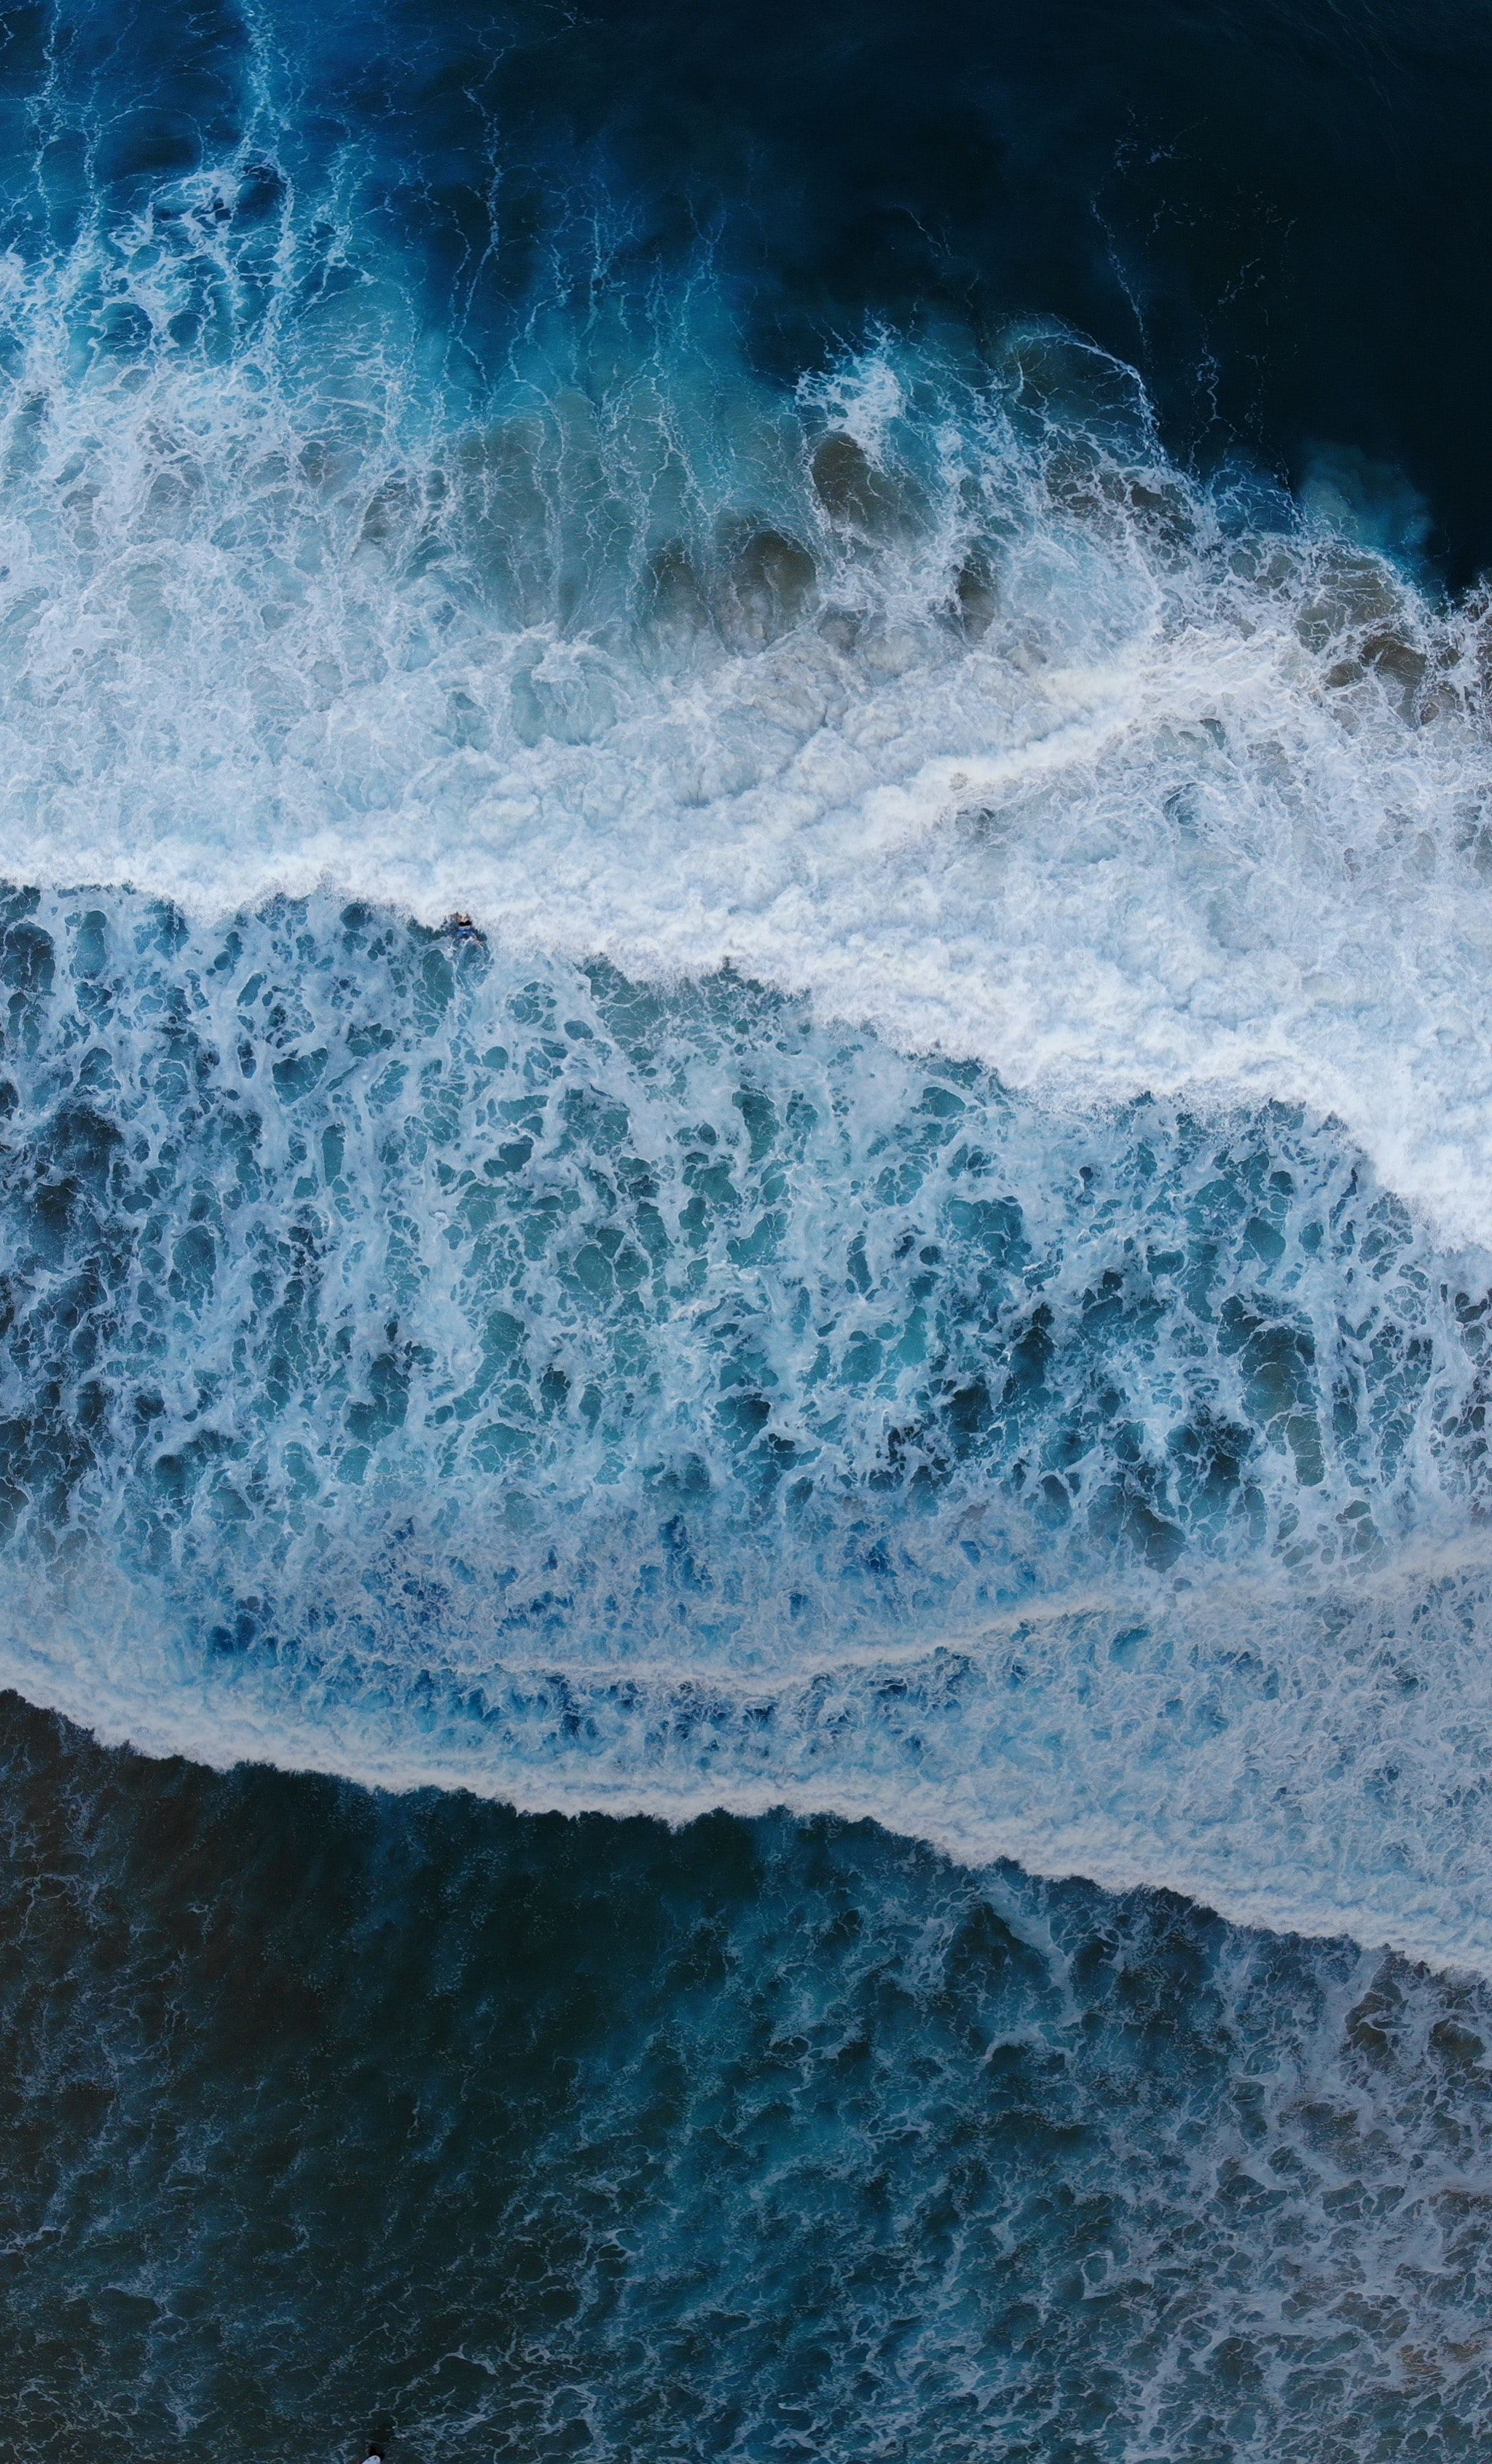 Pin By Julicastro89 On Ocean Water Pictures Waves Sea And Ocean Waves close up photography of sea